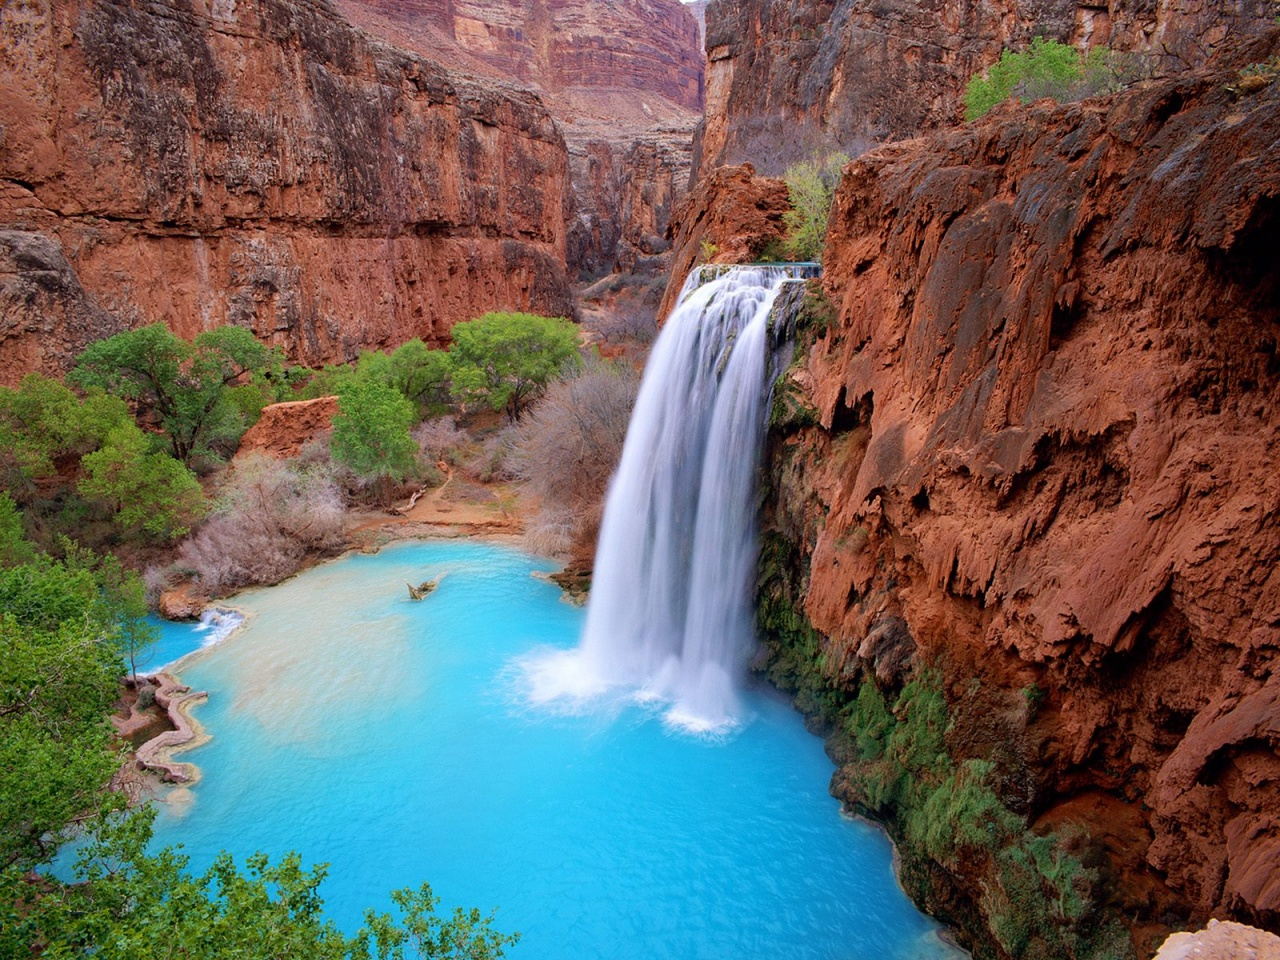 The Waterfalls of Havasupai